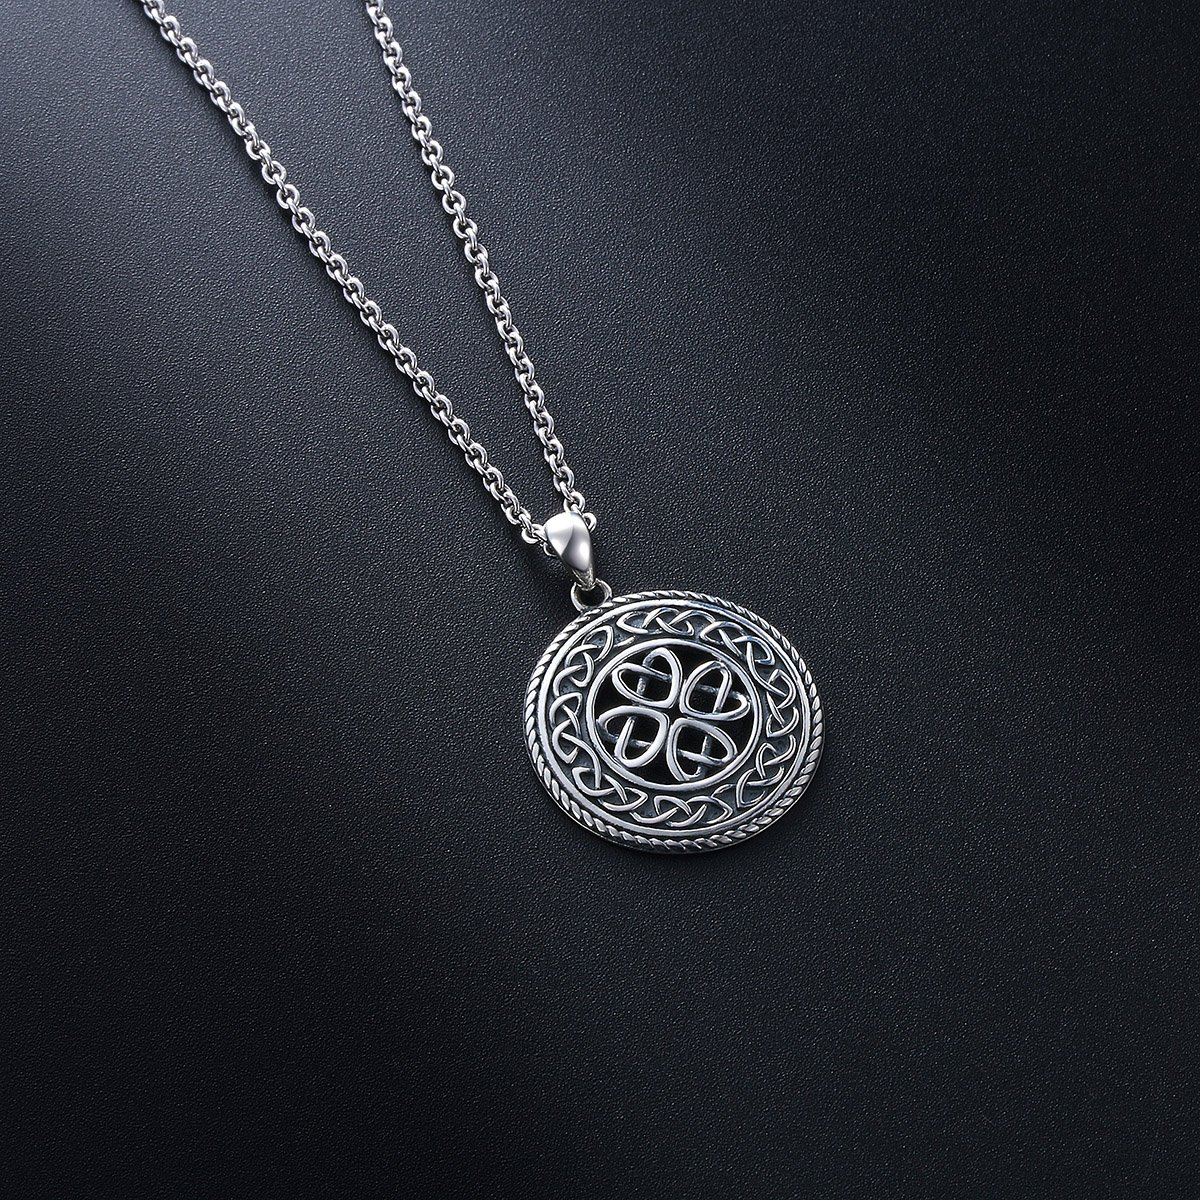 ff1816a5ac73 925 Sterling Silver Jewelry Oxidized Good Luck Irish Knot Celtic Medallion  Round Pendant Necklace